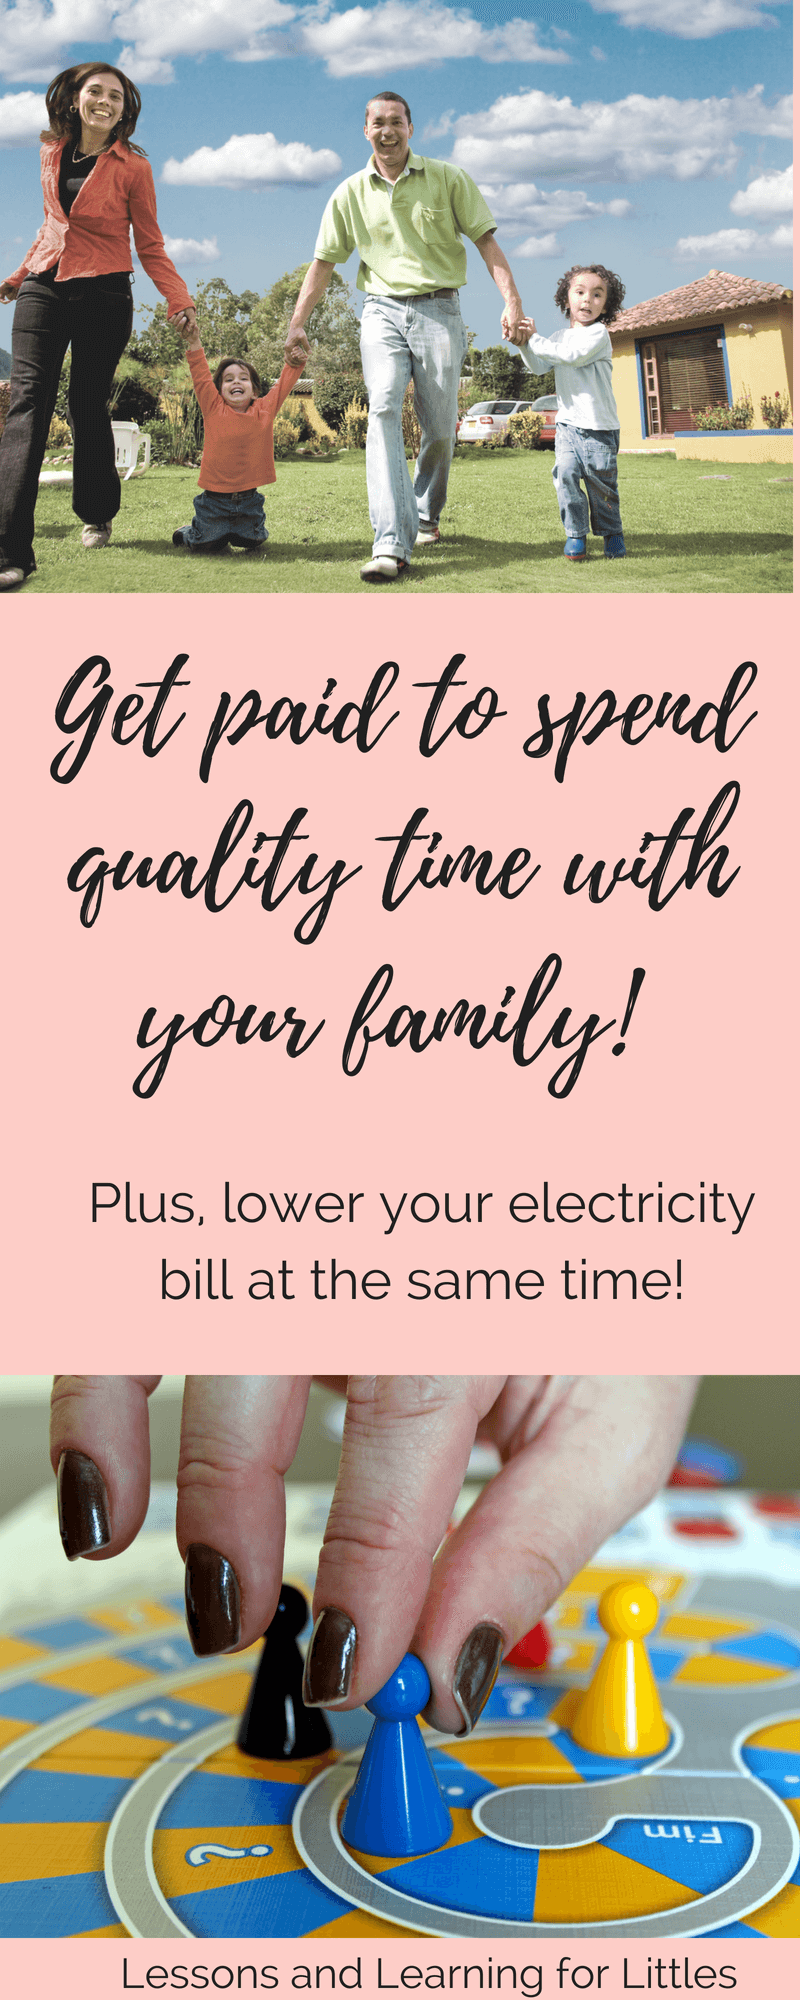 Lowering your electricity bills to save money and stay within your #budget is easier than you might think! Find out how I drastically reduced our electricity bill and added in quality family time each week! #familygoals #ohmhour #motherhood #sahm